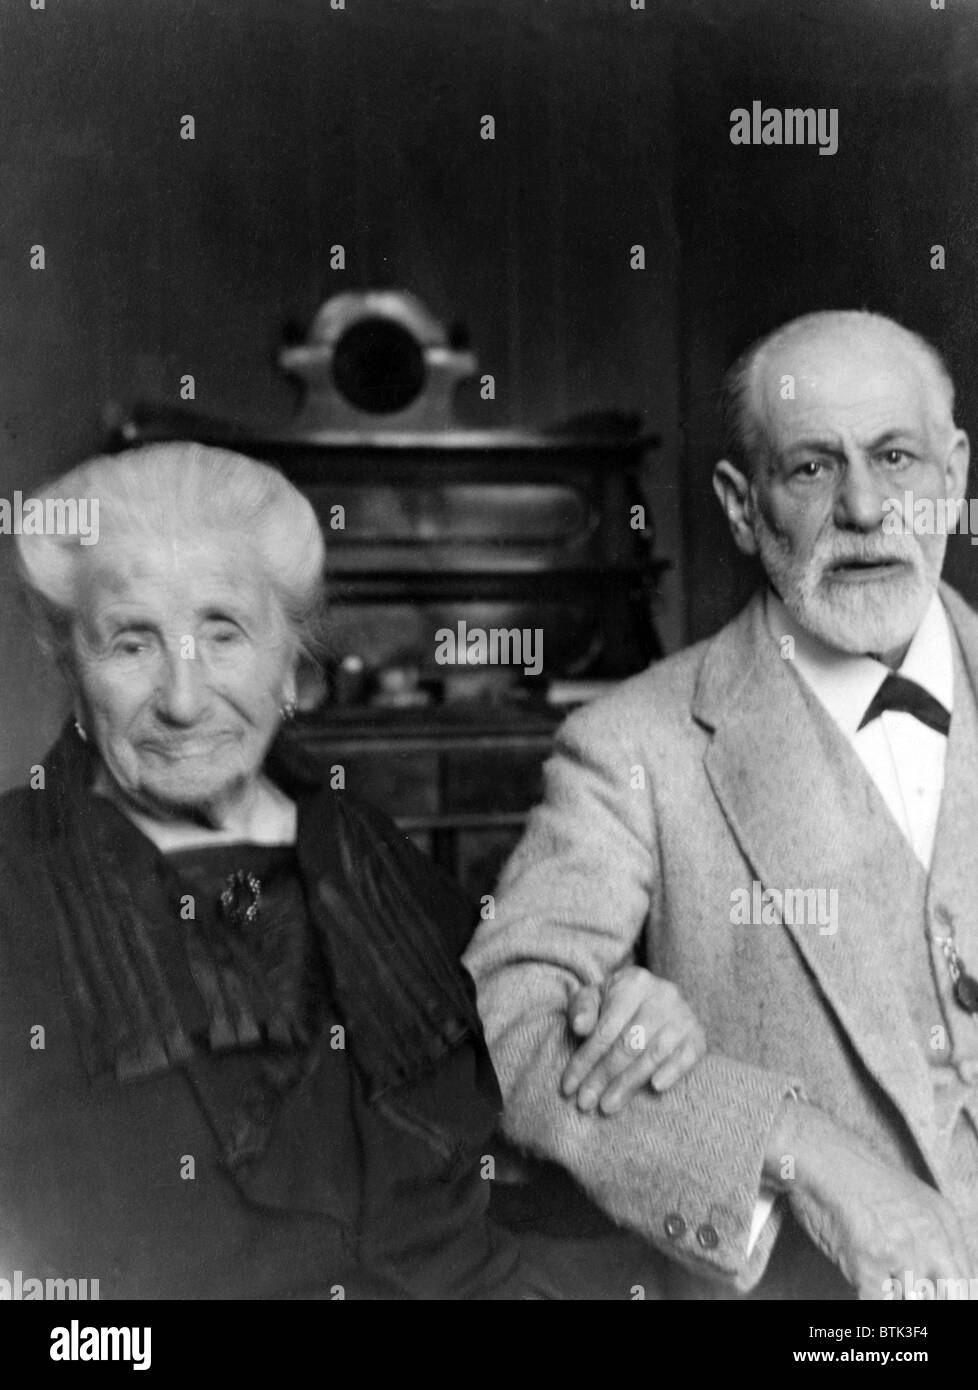 Sigmund Freud (1856-1939), and his mother, Amalia Freud (1835-1929), in 1925. - Stock Image